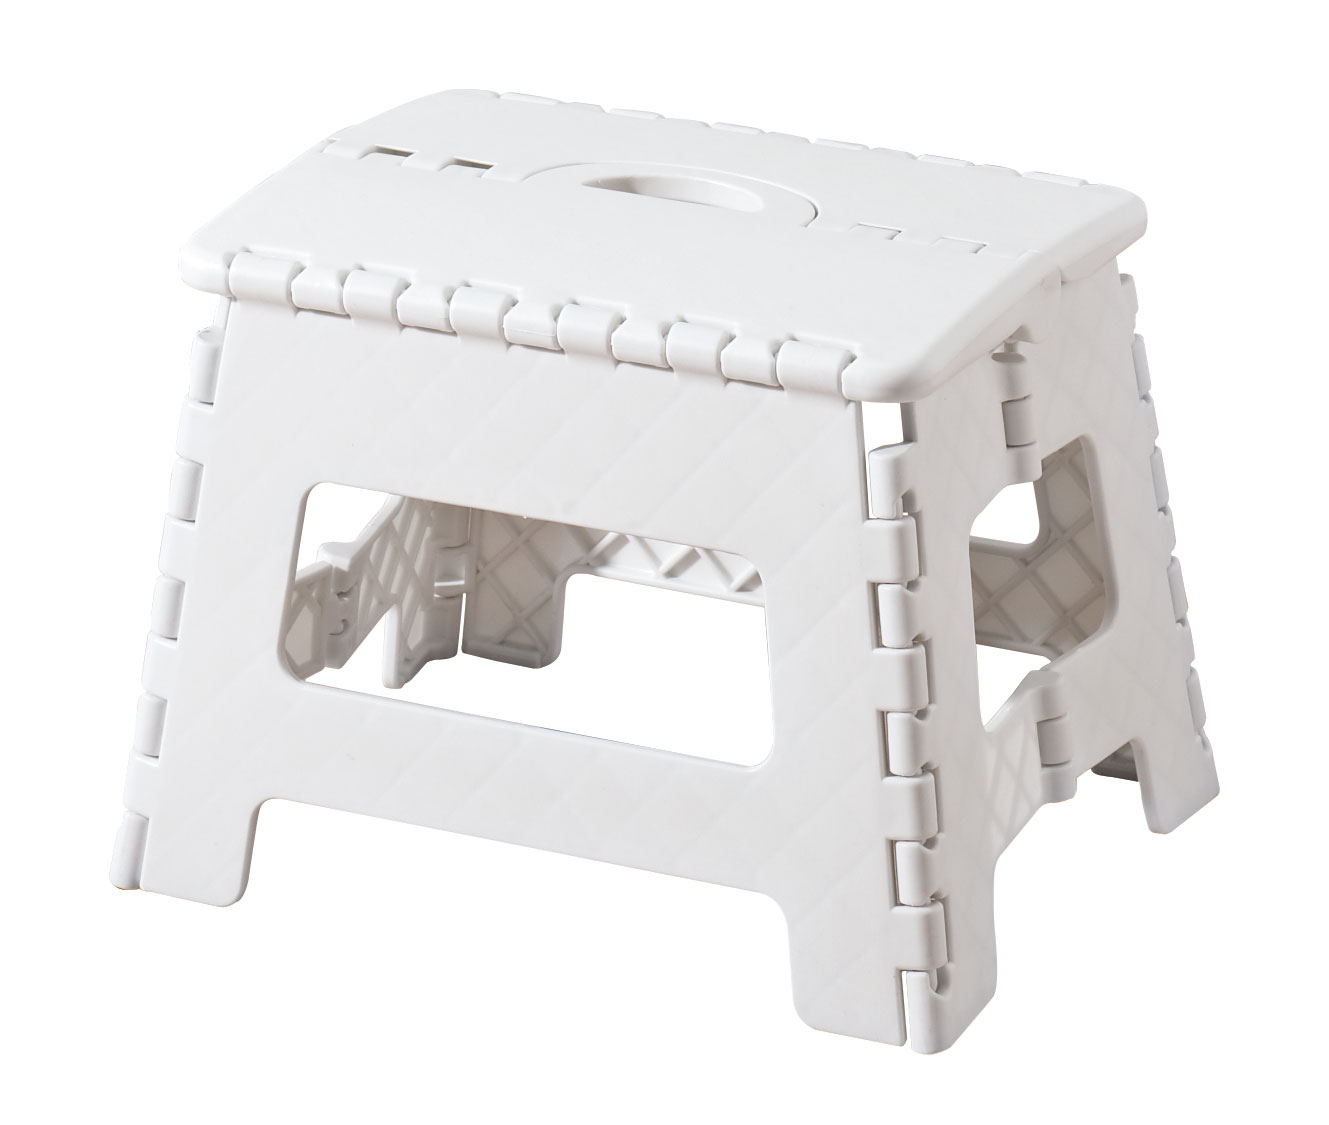 Astounding Folding Step Stool Walmart Com Pabps2019 Chair Design Images Pabps2019Com